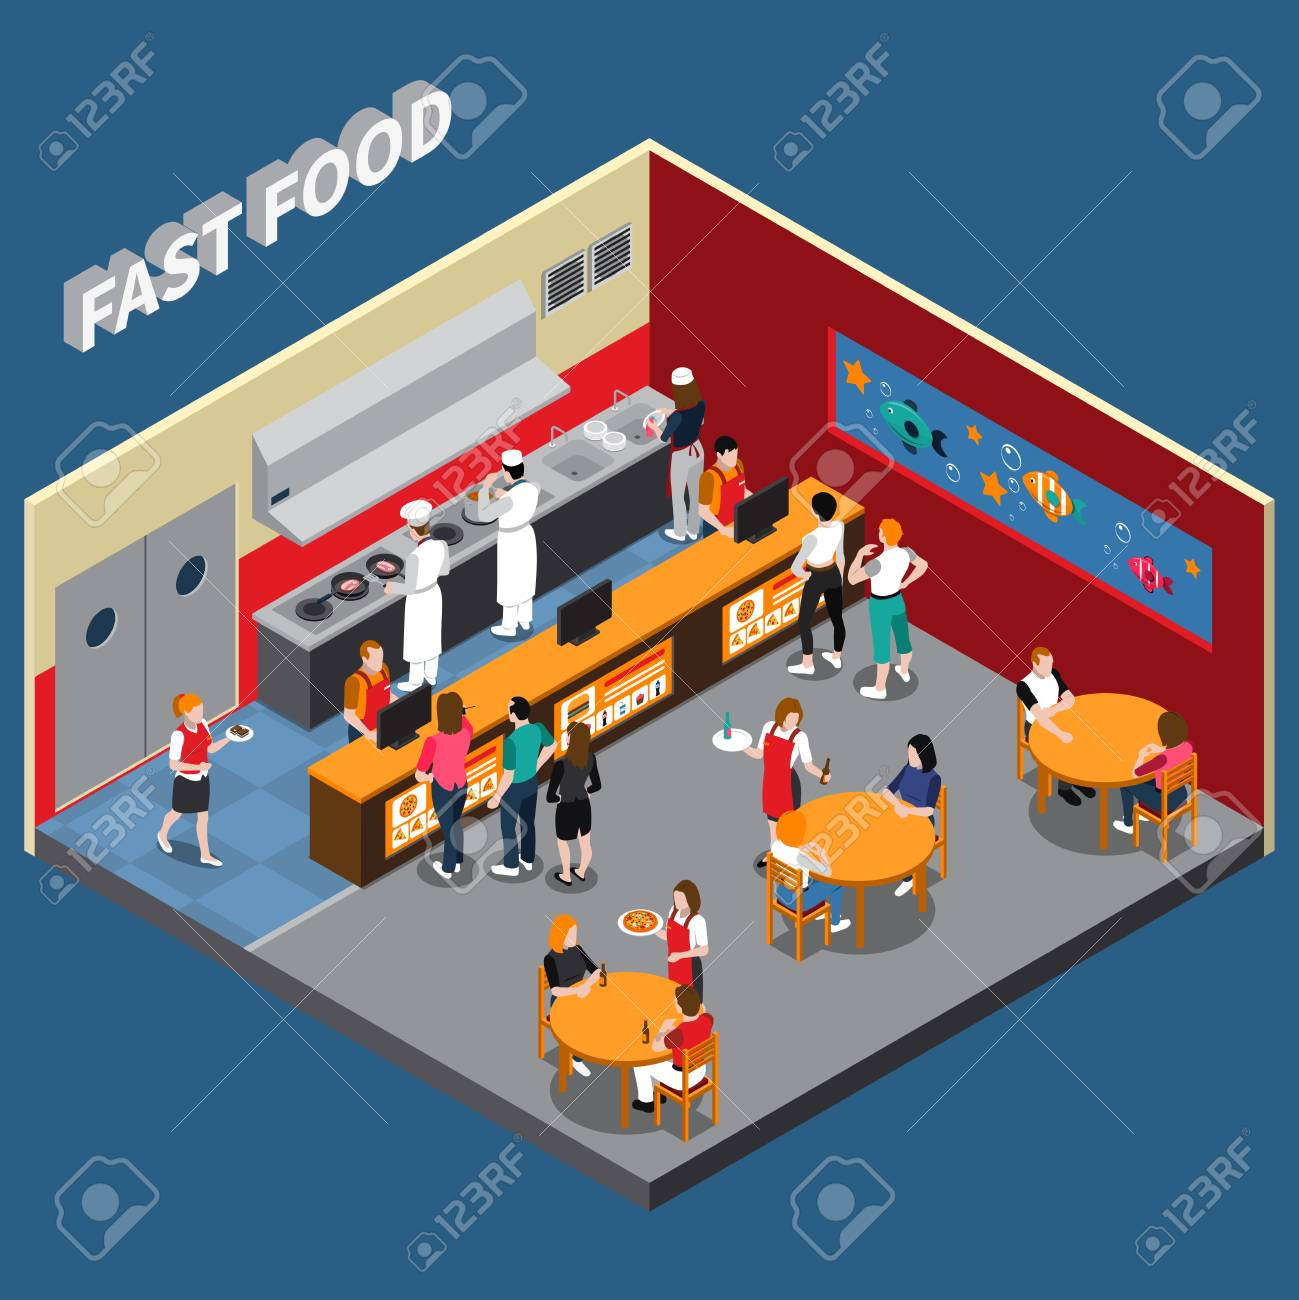 Fast food restaurant with employees of kitchen cashiers waitresses and visitors interior elements isometric vector illustration - 92020882